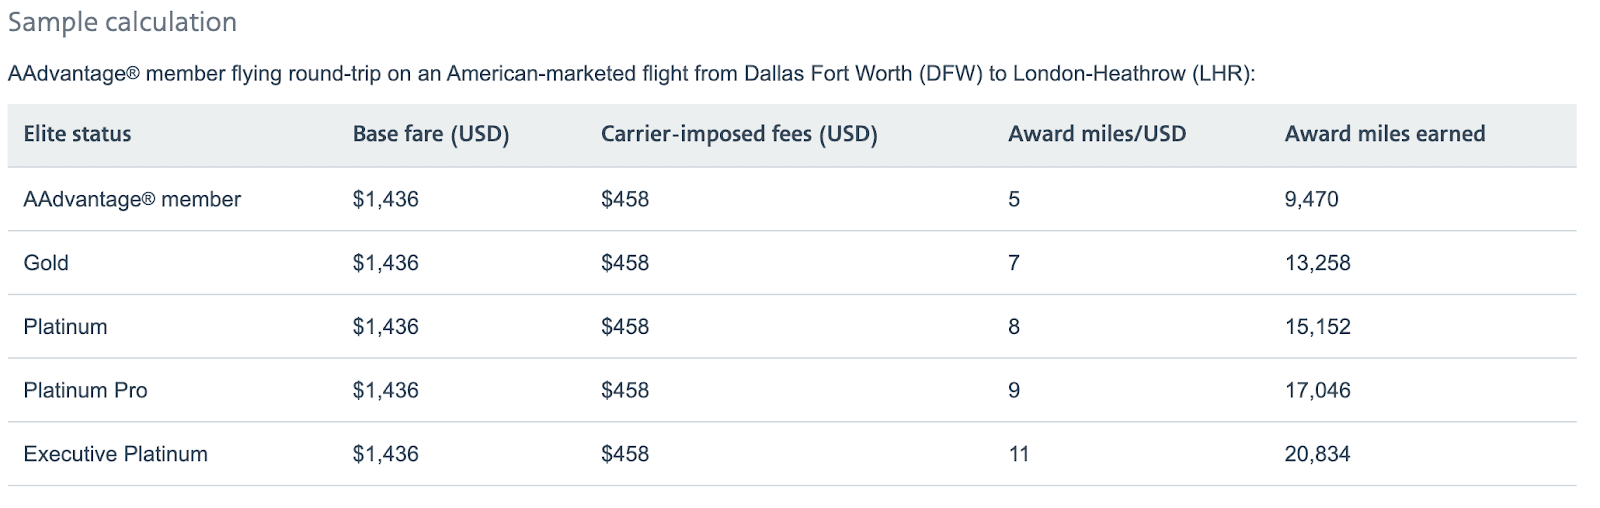 How Do Airline Miles Work - Sample calculations